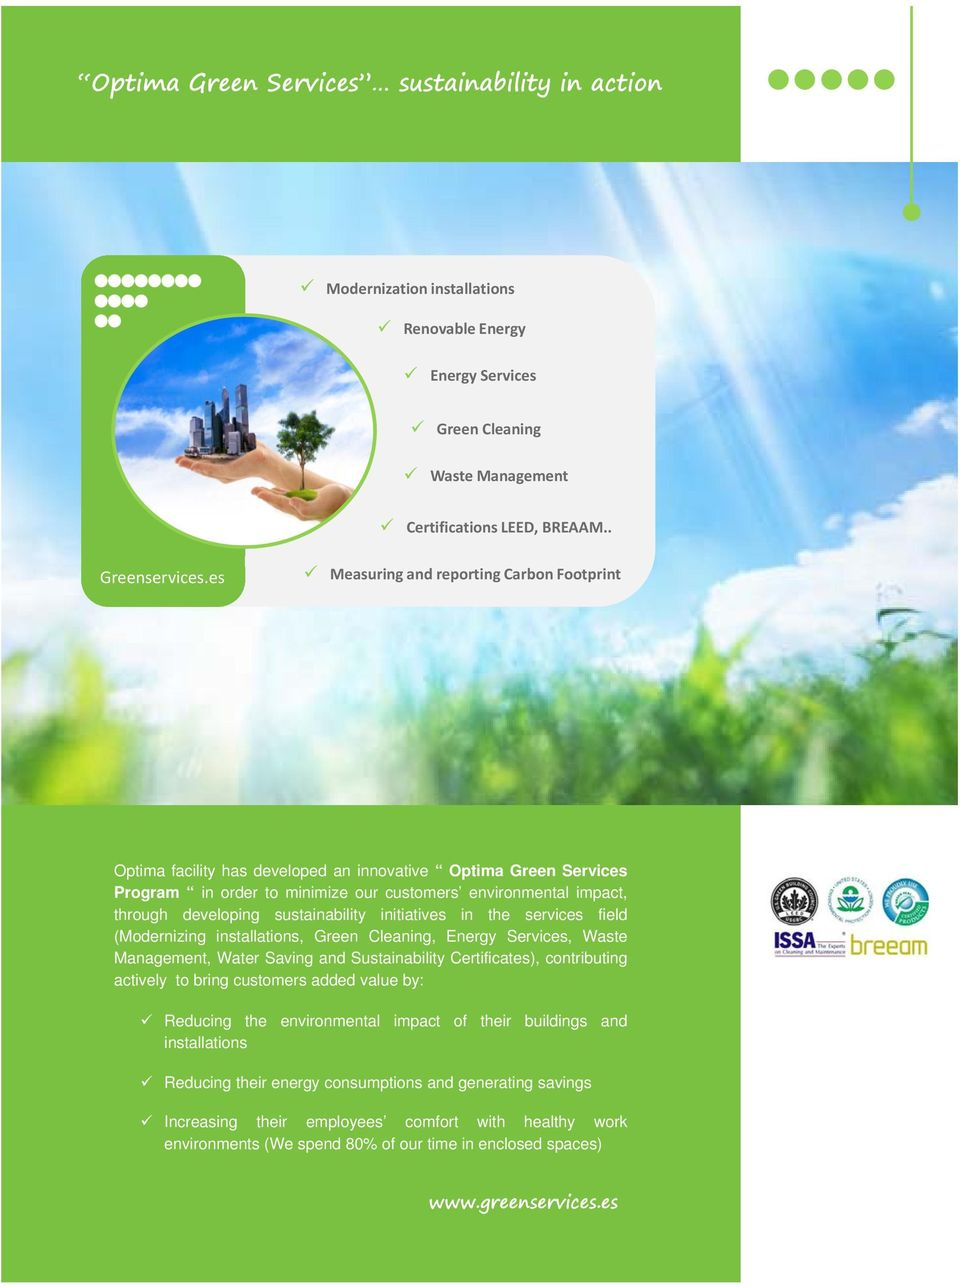 sustainability initiatives in the services field (Modernizing installations, Green Cleaning, Energy Services, Waste Management, Water Saving and Sustainability Certificates), contributing actively to